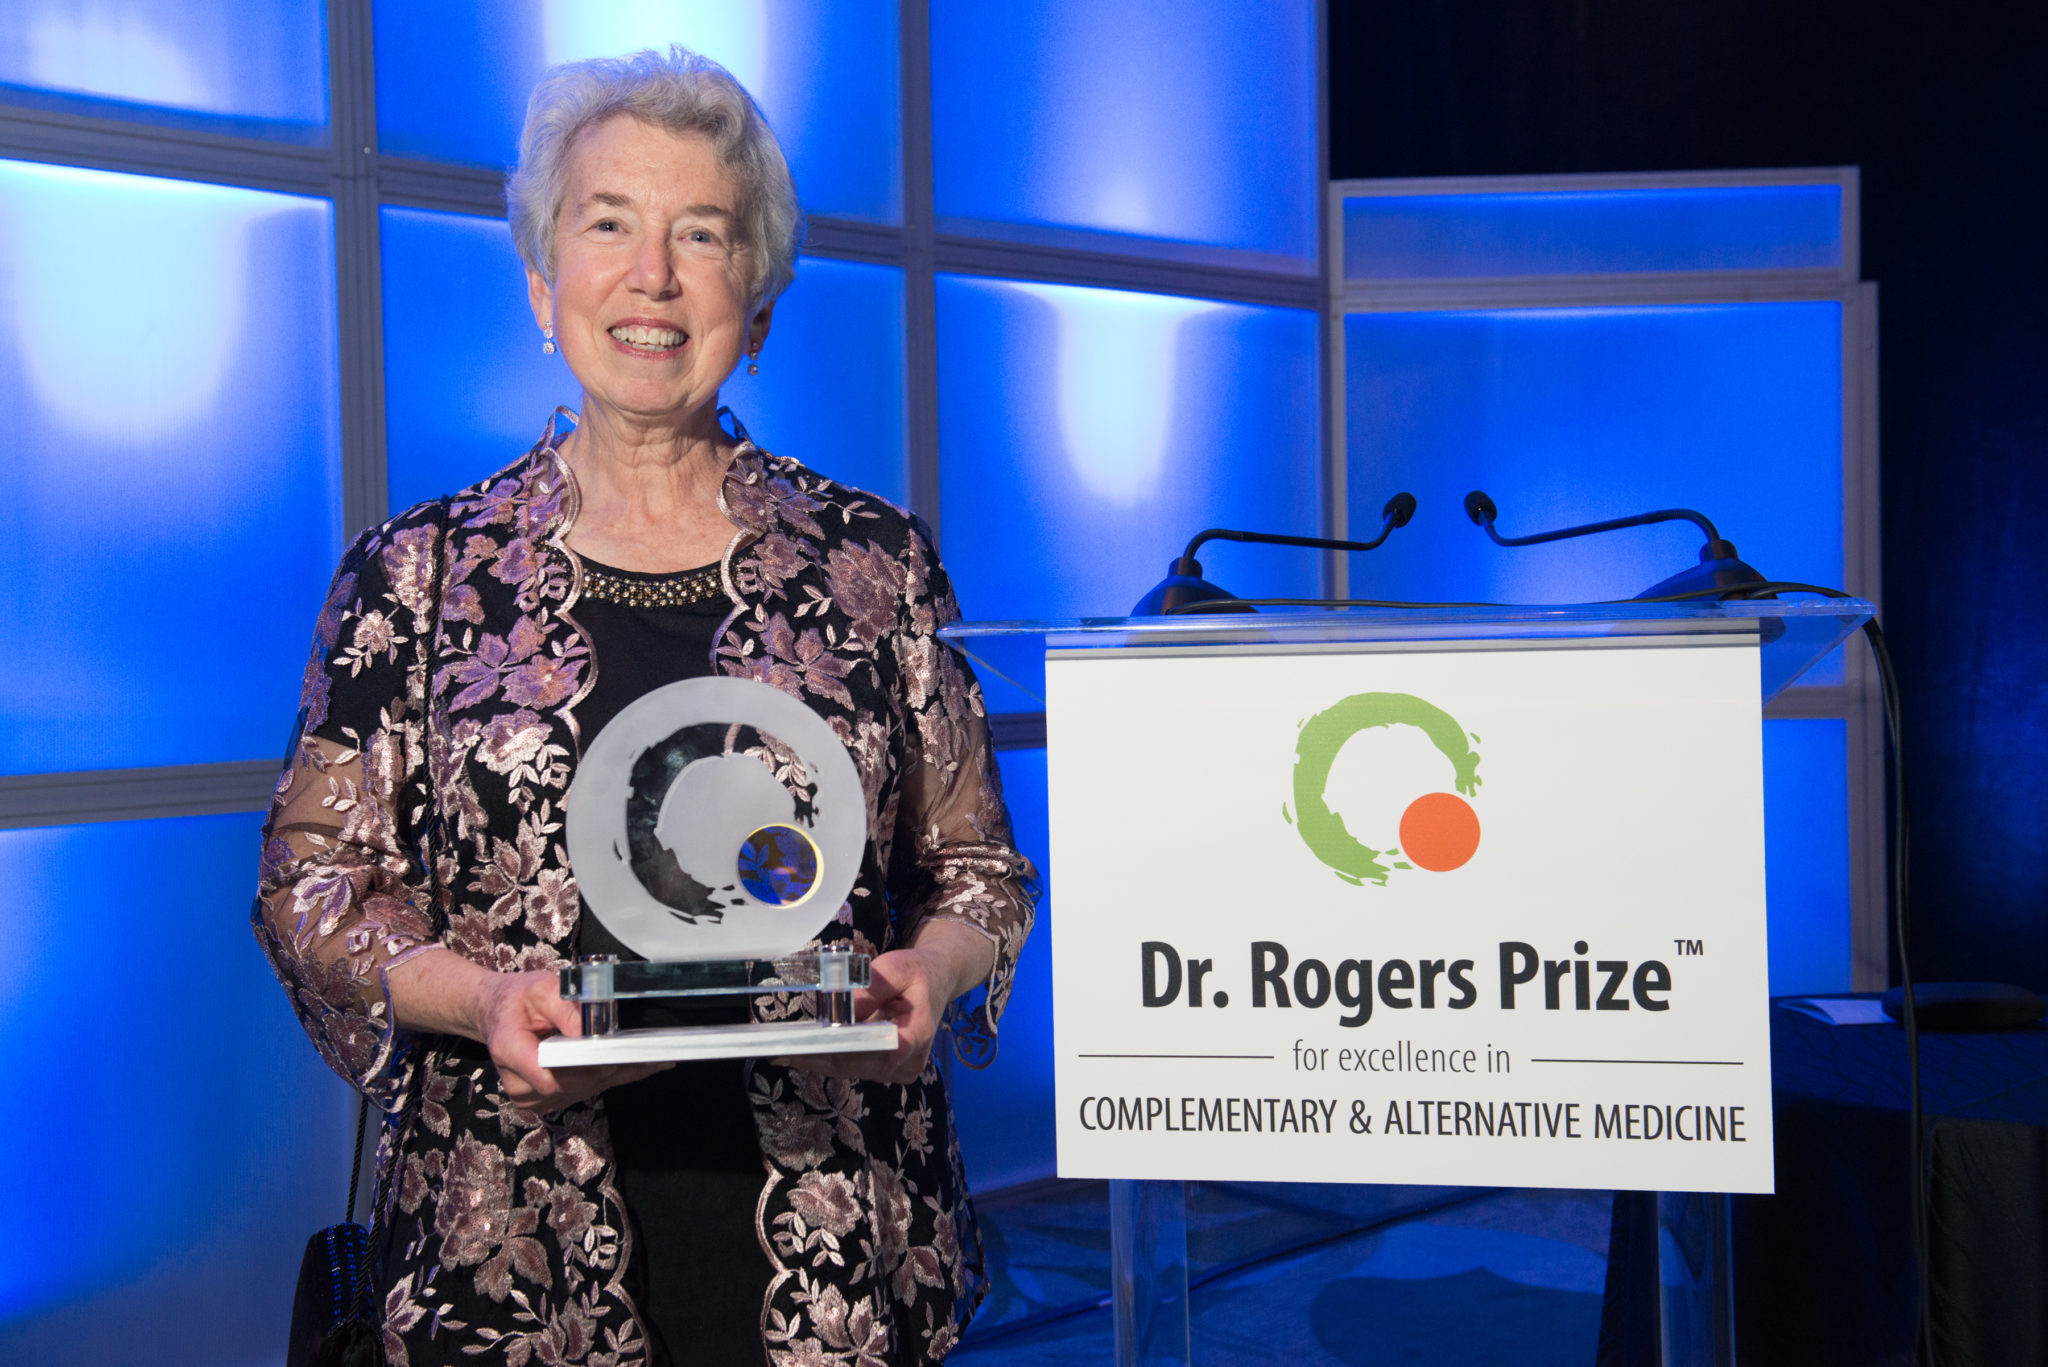 Dr. Rogers Prize 2019 Gala Award Dinner